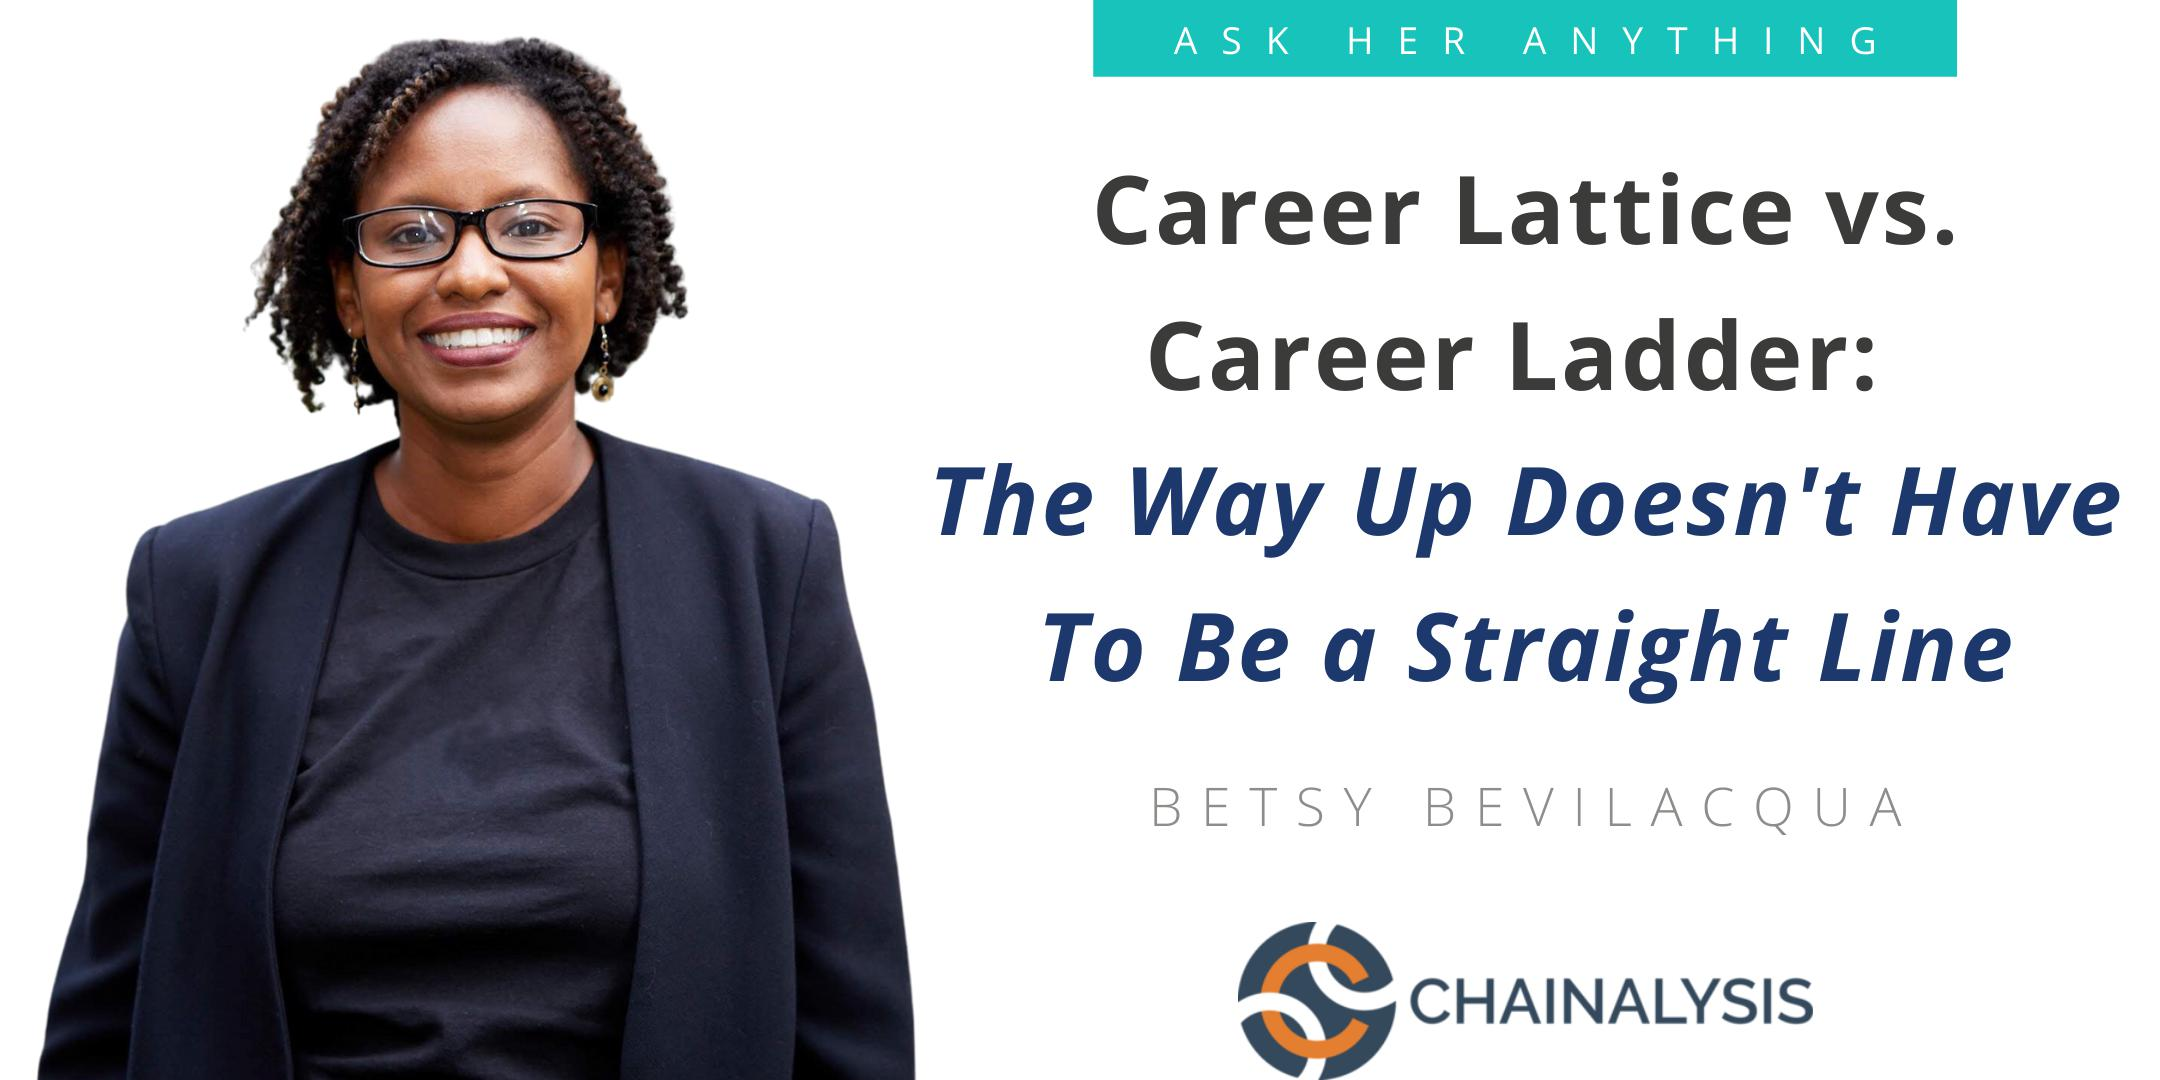 Career Lattice vs. Career Ladder: The Way Up Doesn't Have To Be a Straight Line